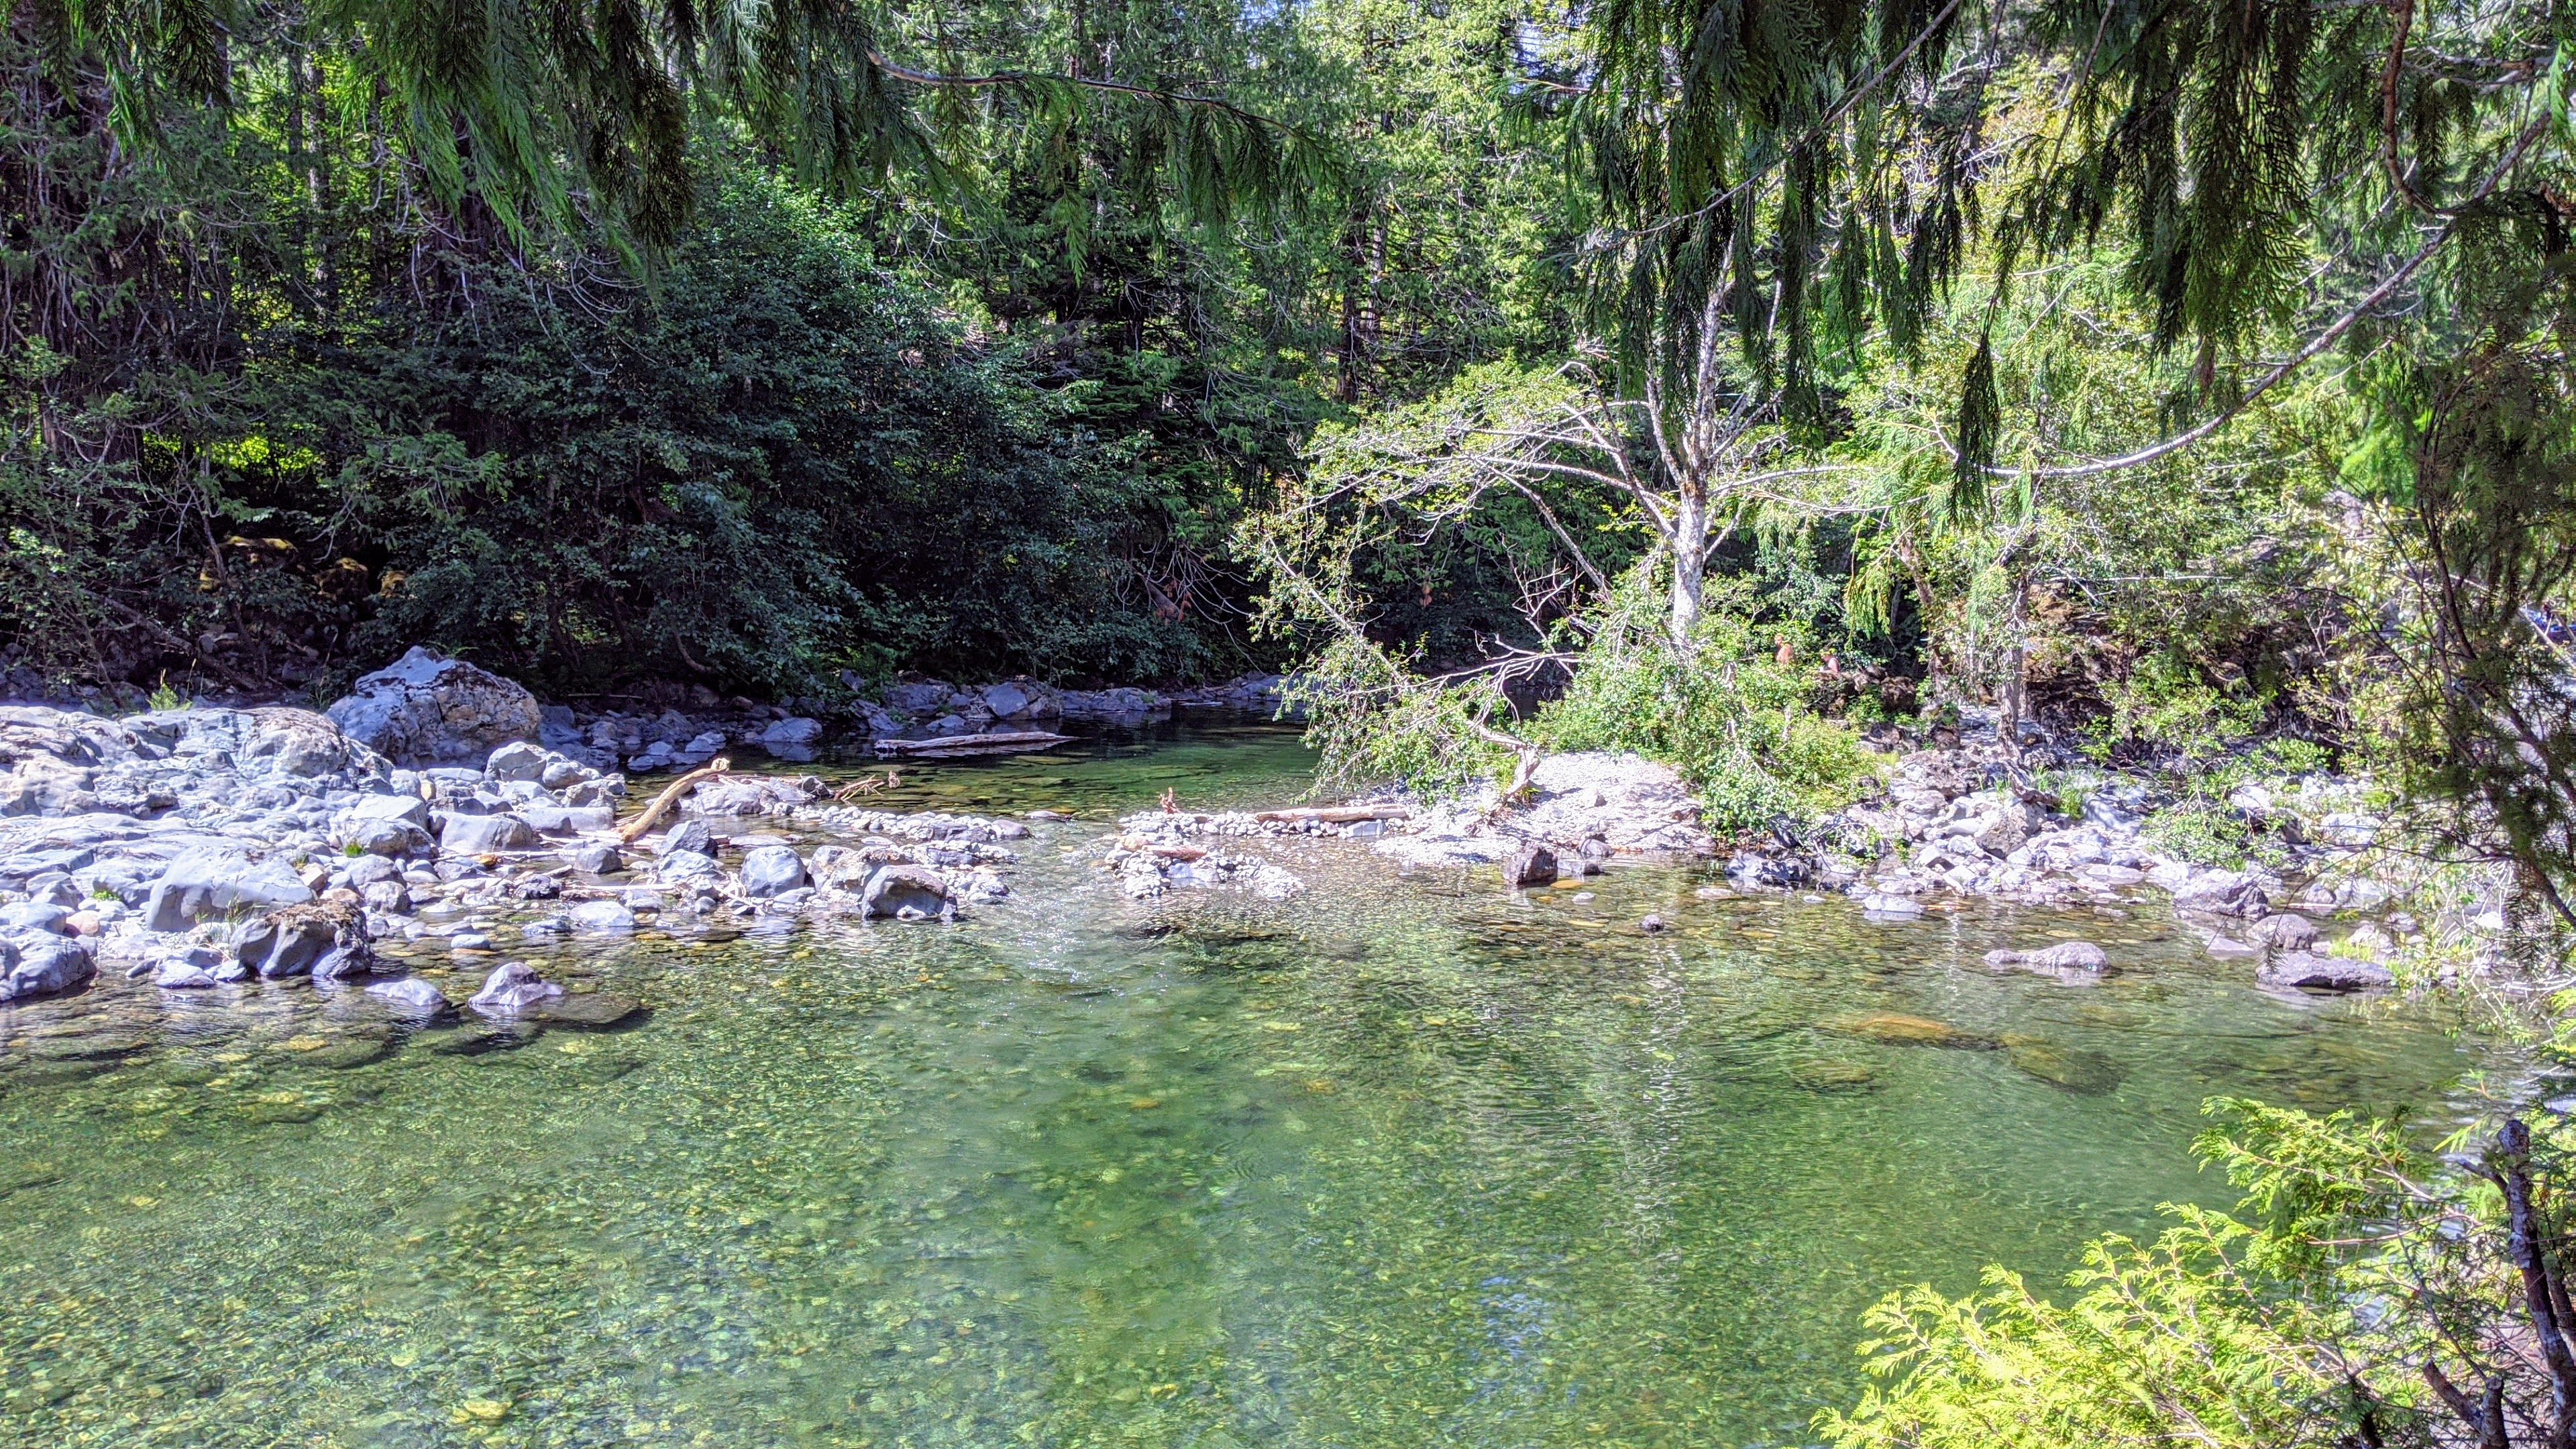 One of the swimming holes at Sooke Potholes Park in Sooke. You can actually slide down the little stream and access the other pools. The water is very cold though!